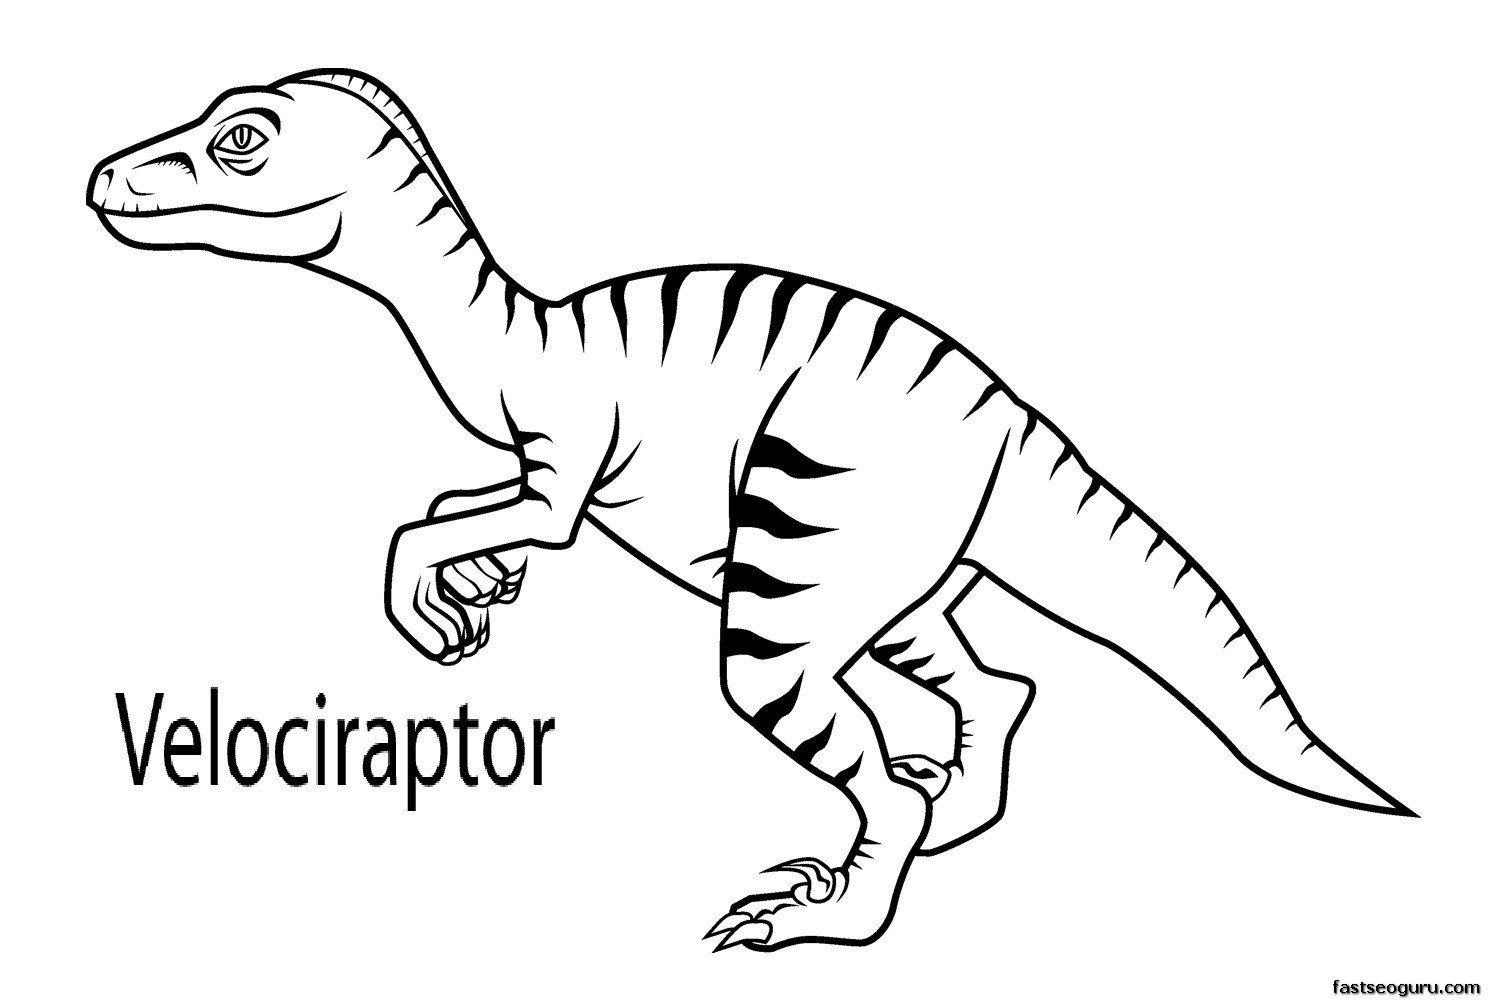 Printable coloring pages dinosaurs -  Dinosaur Coloring Pages Printable